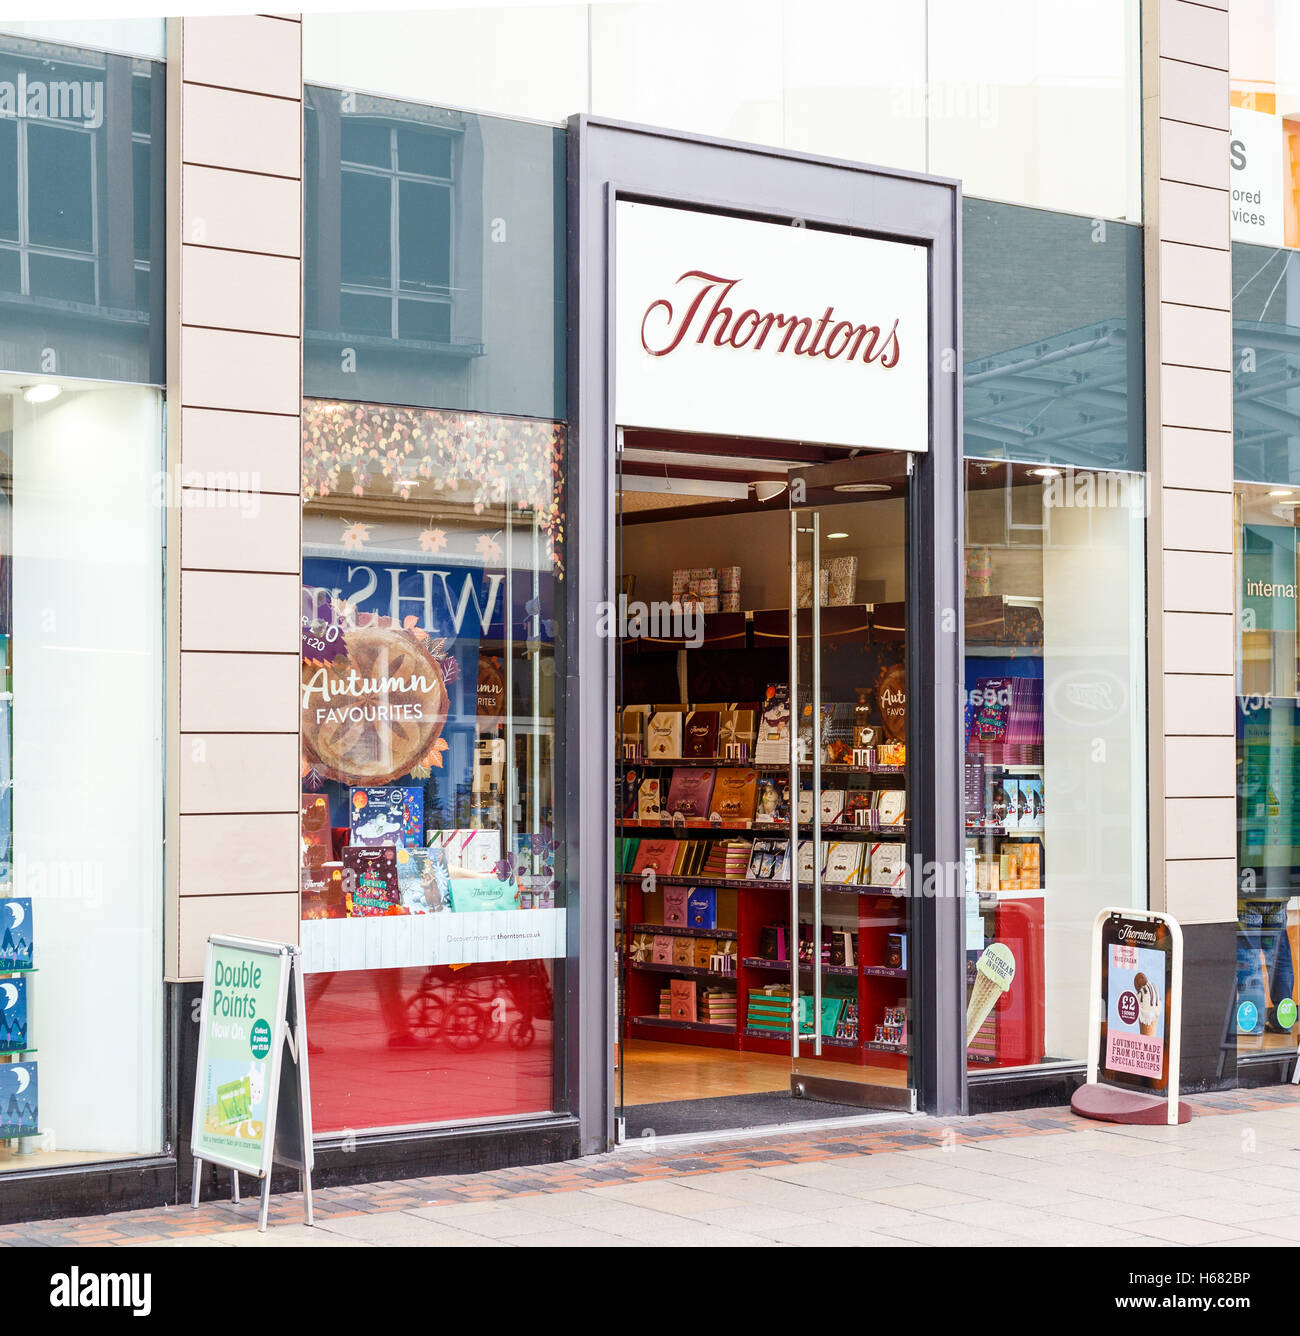 Frontage of the Thorntons store. On Listergate, Nottingham, England. - Stock Image